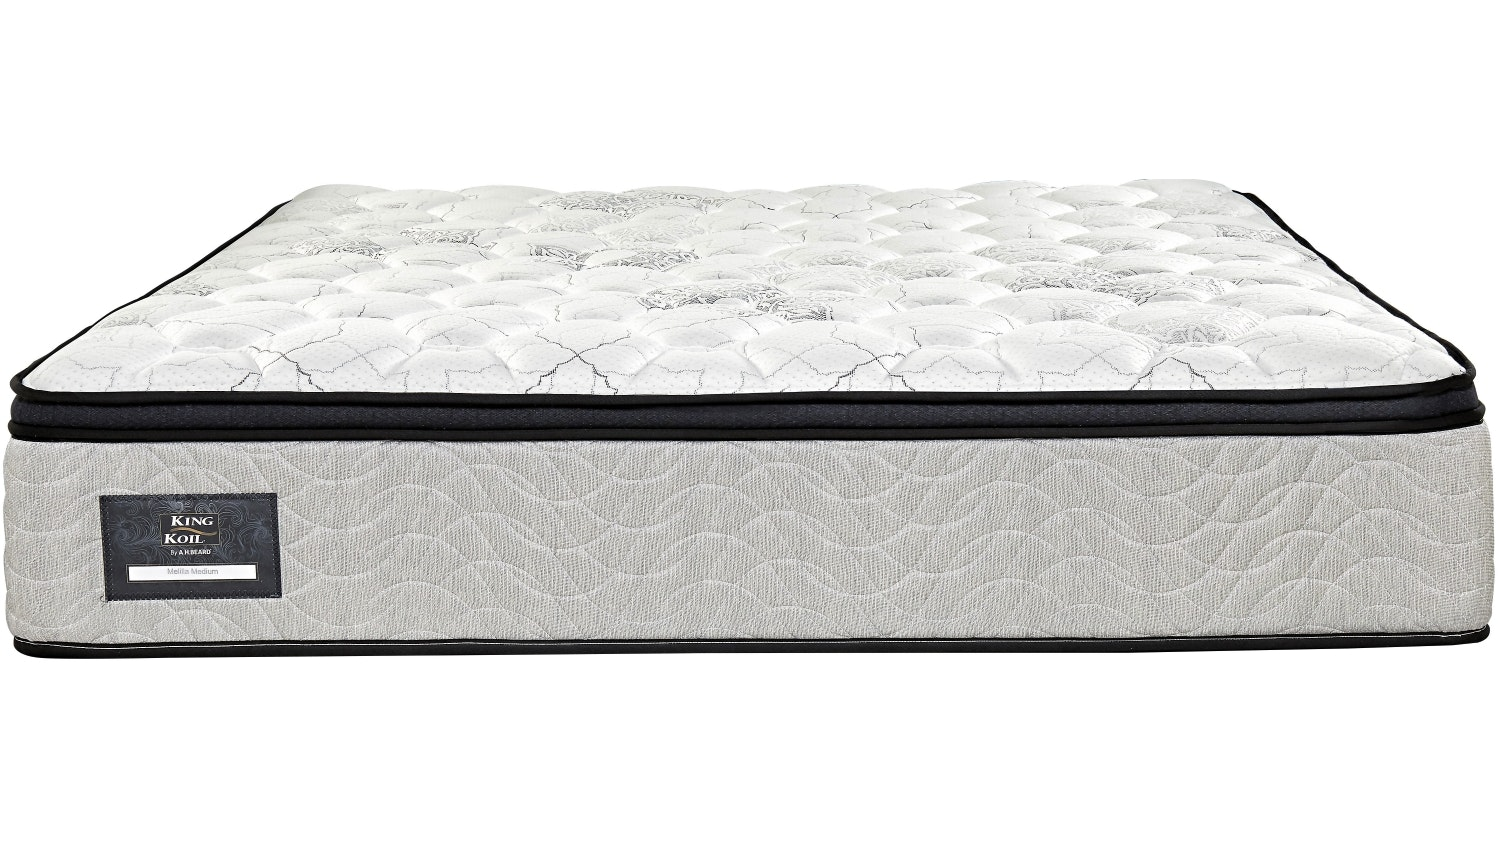 King Koil Melilla Medium Mattress